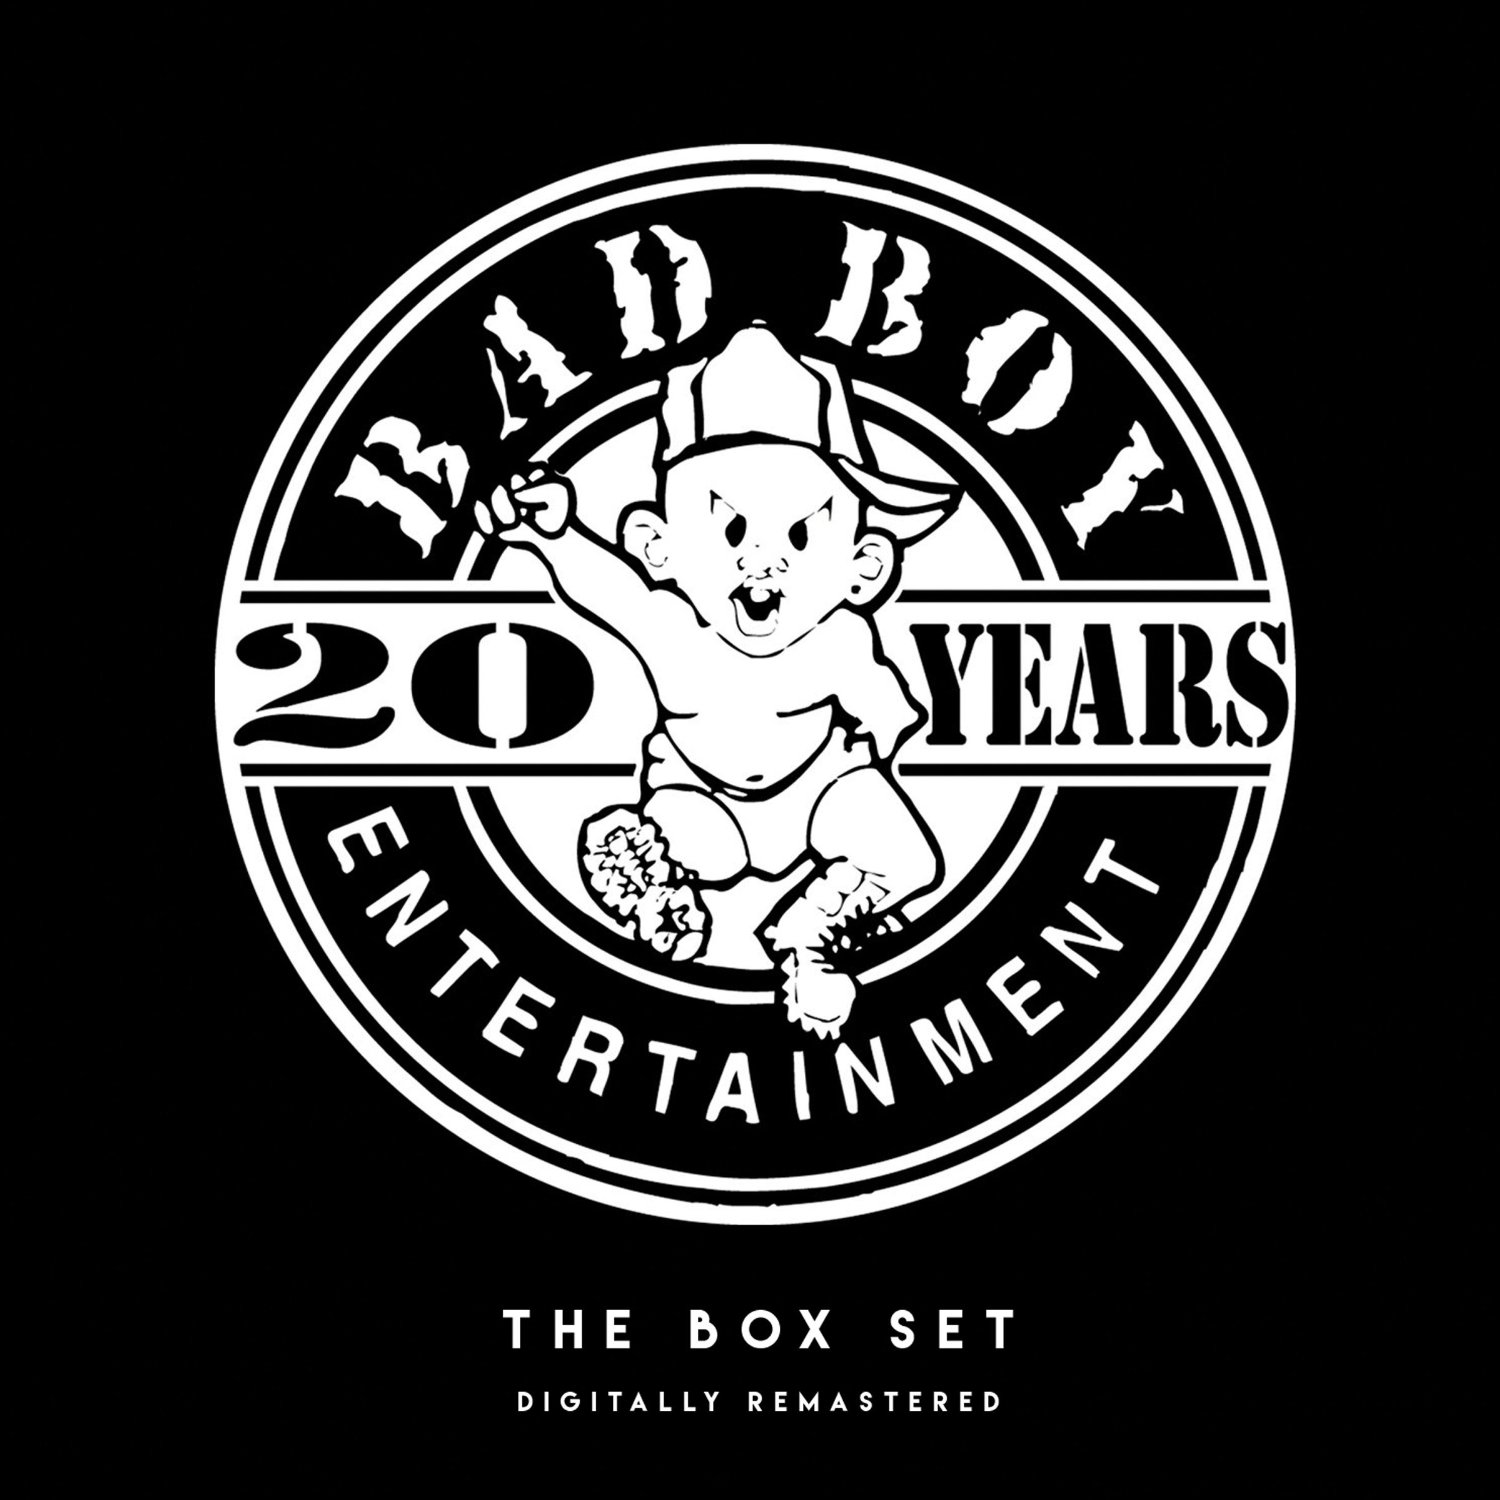 Bad Boy Announces 20th Anniversary Box Set Edition Of 5